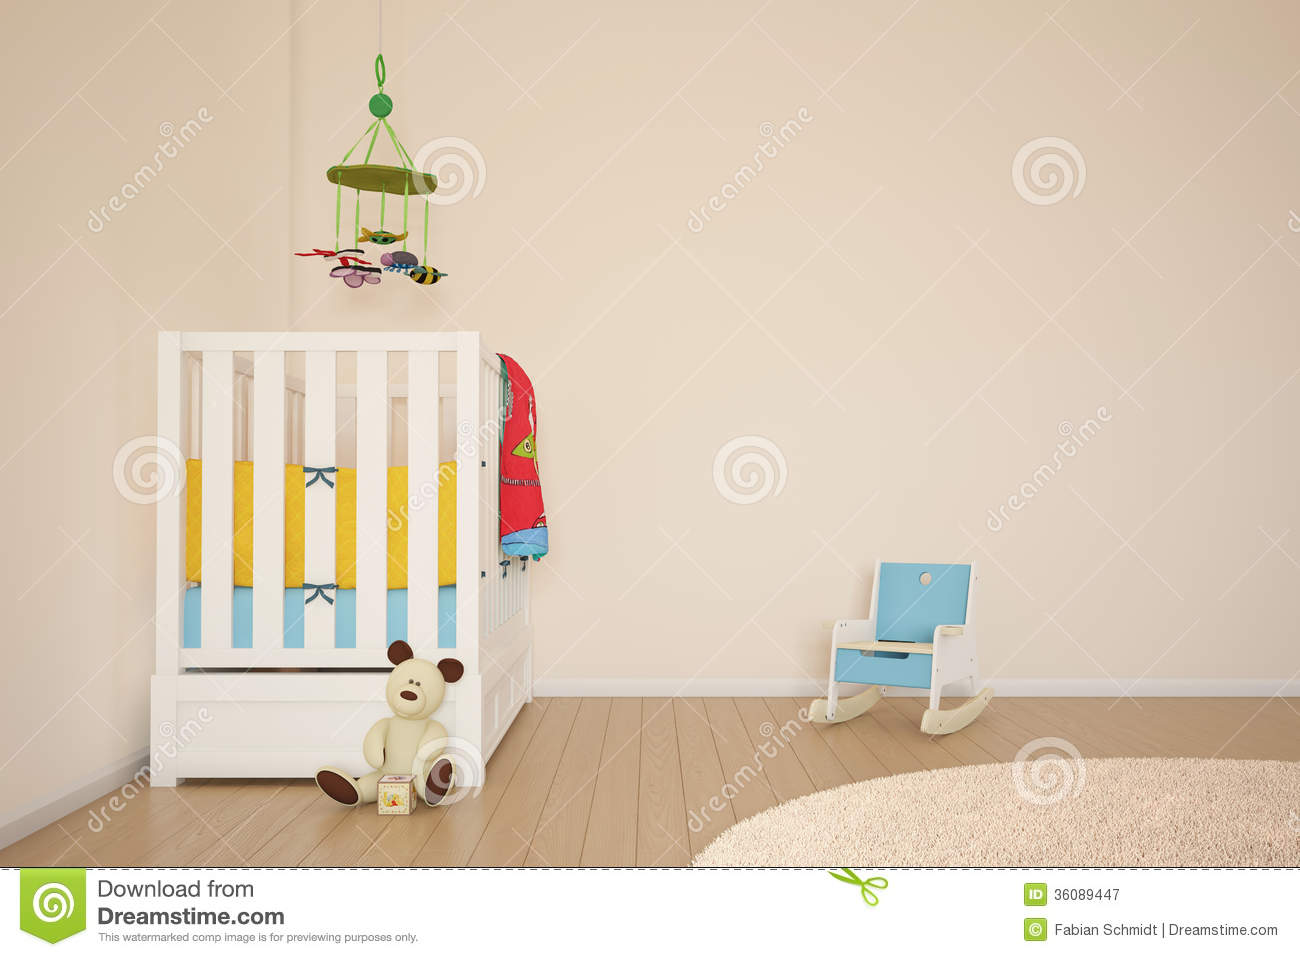 Kids play room with bed royalty free stock photography image 36089447 - Kids room image ...